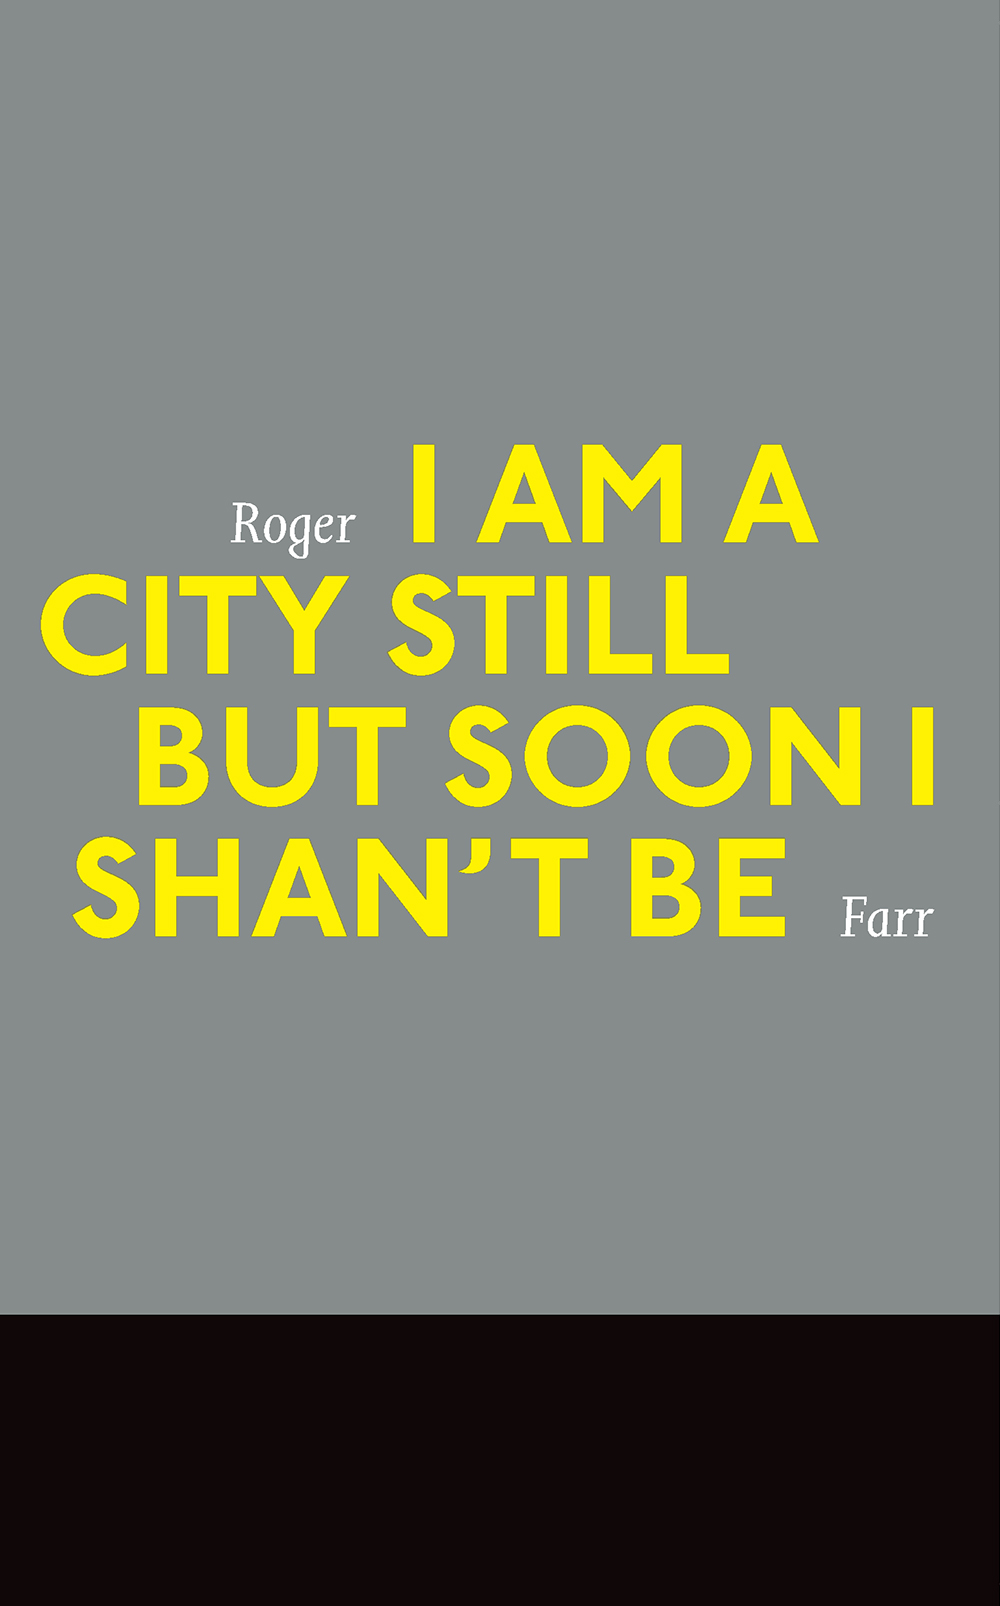 I Am a City Still But Soon I Shan't Be